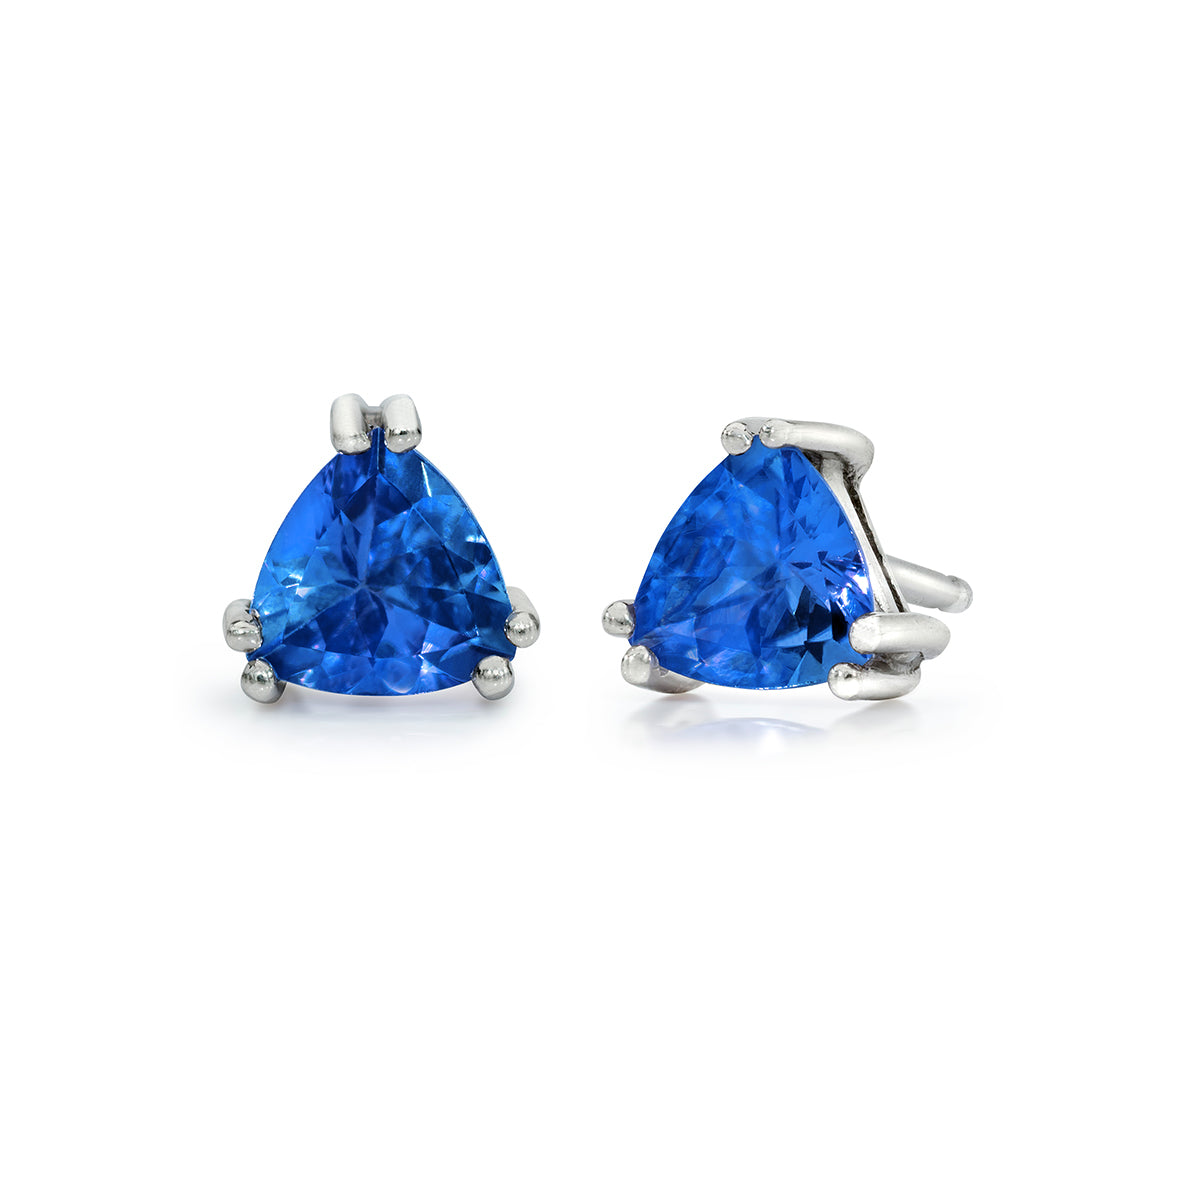 newcomer young one blue gemstoneguru of jewellery tanzanite that turned image the gemstone world